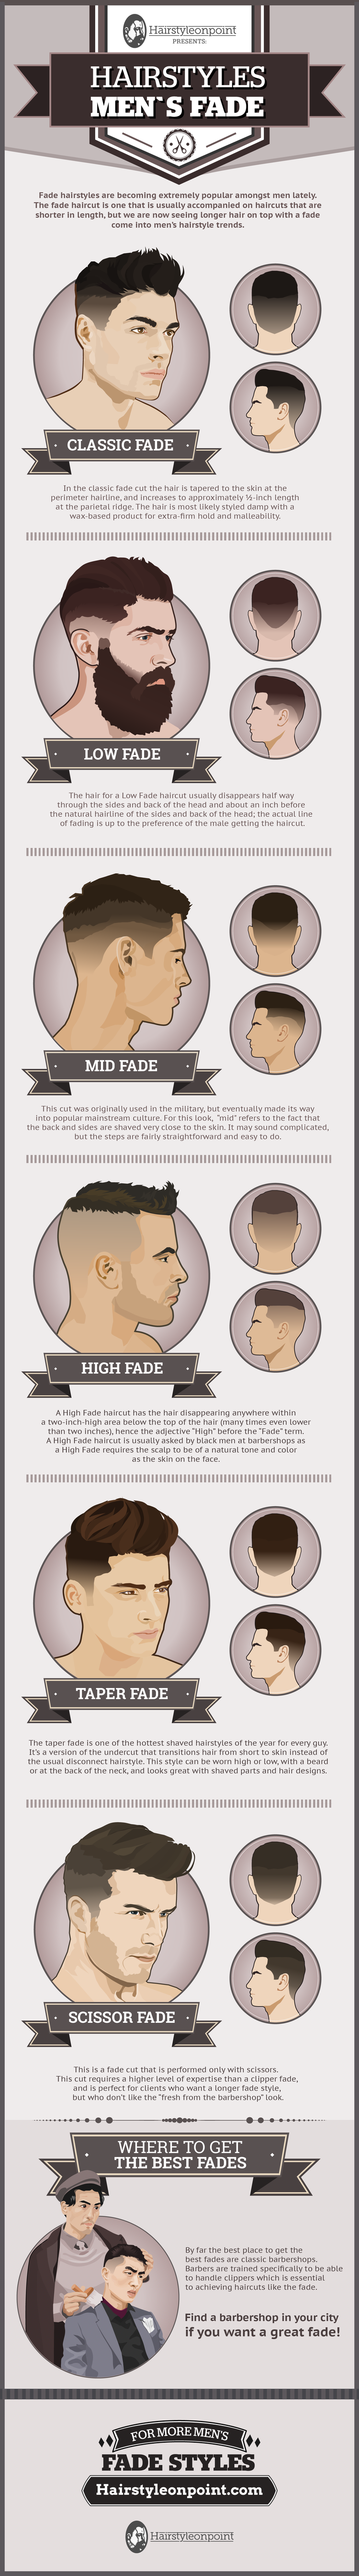 Men fade haircut coolest fade hairstyles u haircuts for men  infographic haircuts